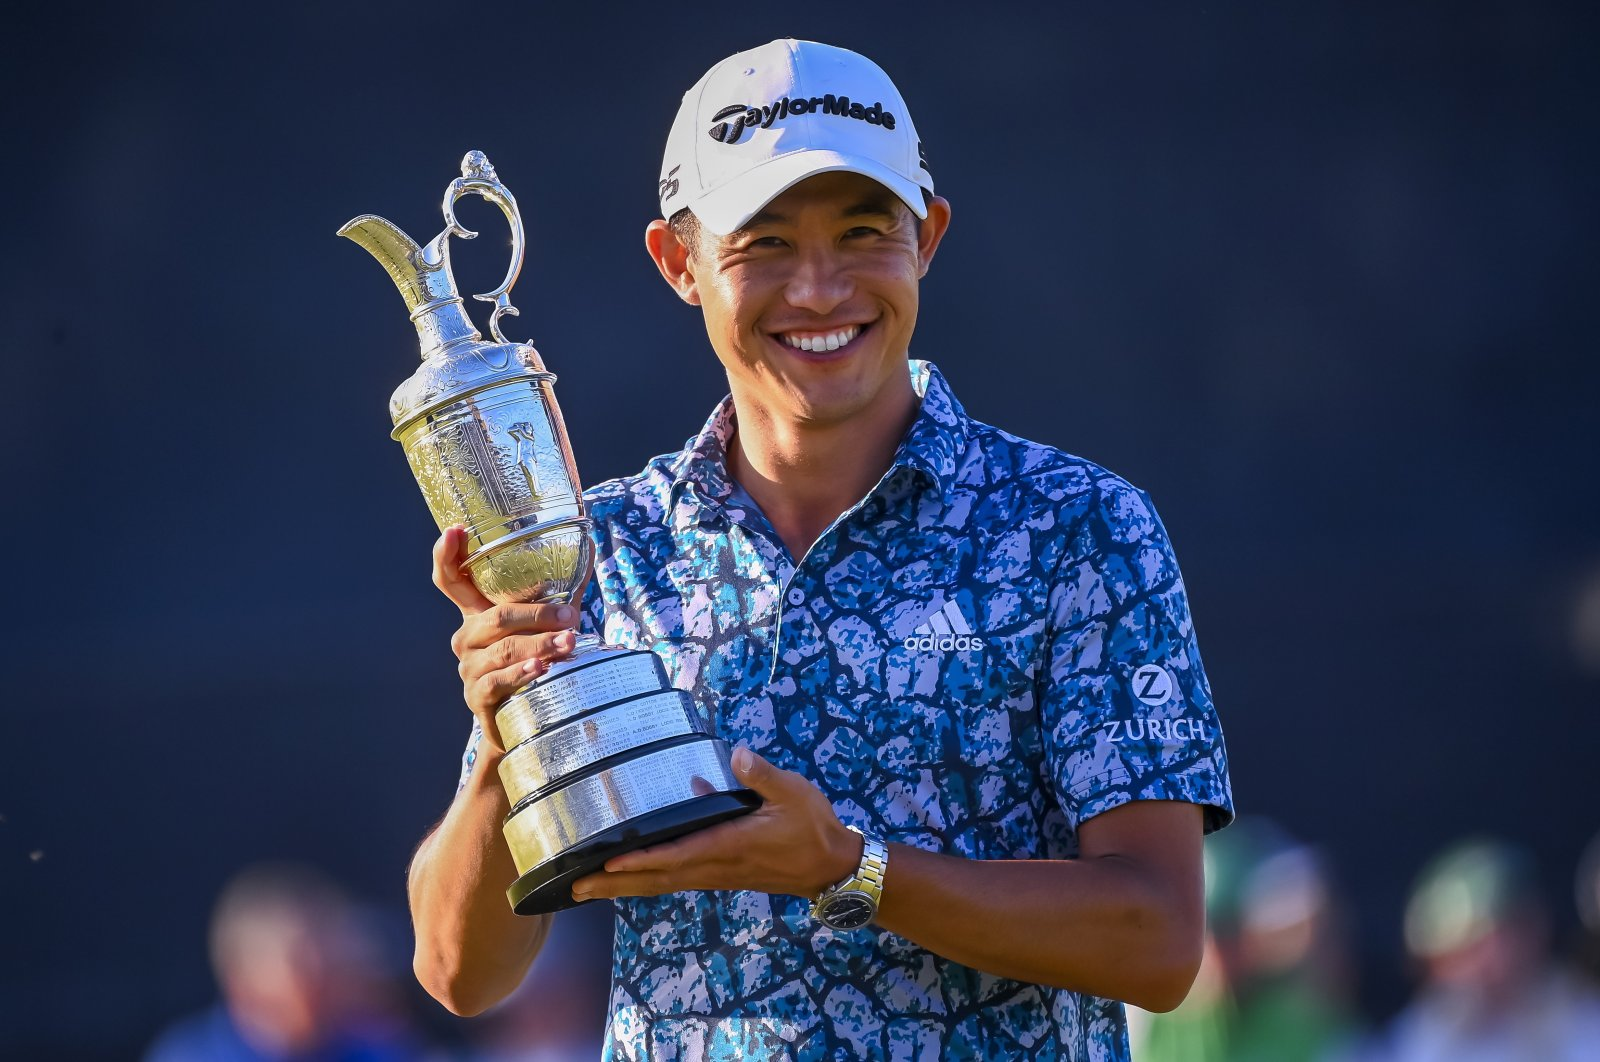 Collin Morikawa of the U.S. holds the Claret Jug after winning The Open 2021 golf championship at Royal St. George's golf course in Sandwich, Kent, Britain, July 18, 2021. (EPA Photo)